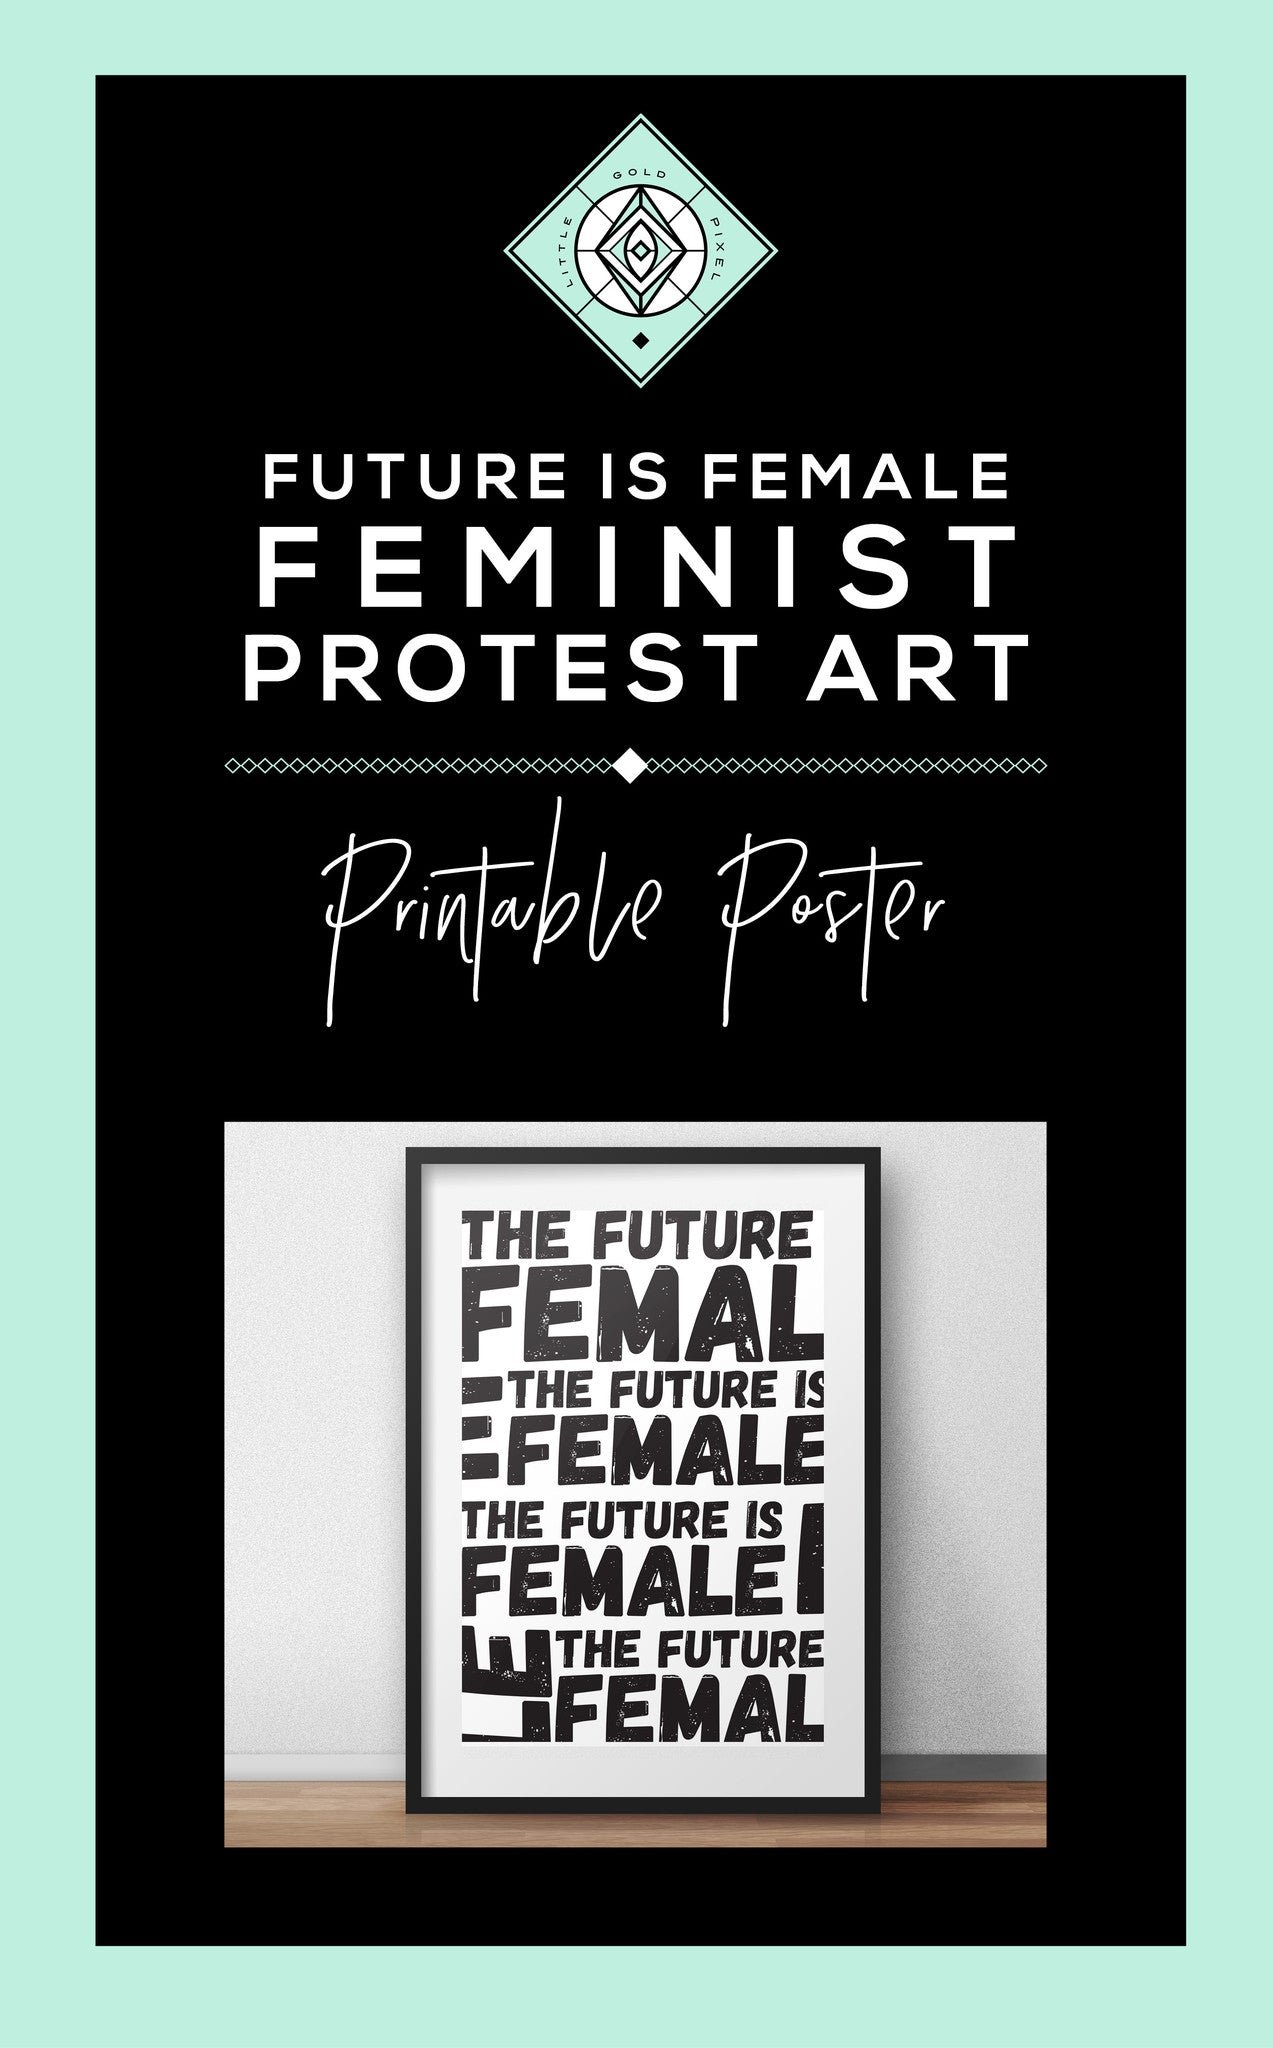 Future is Female Feminist Printable Poster